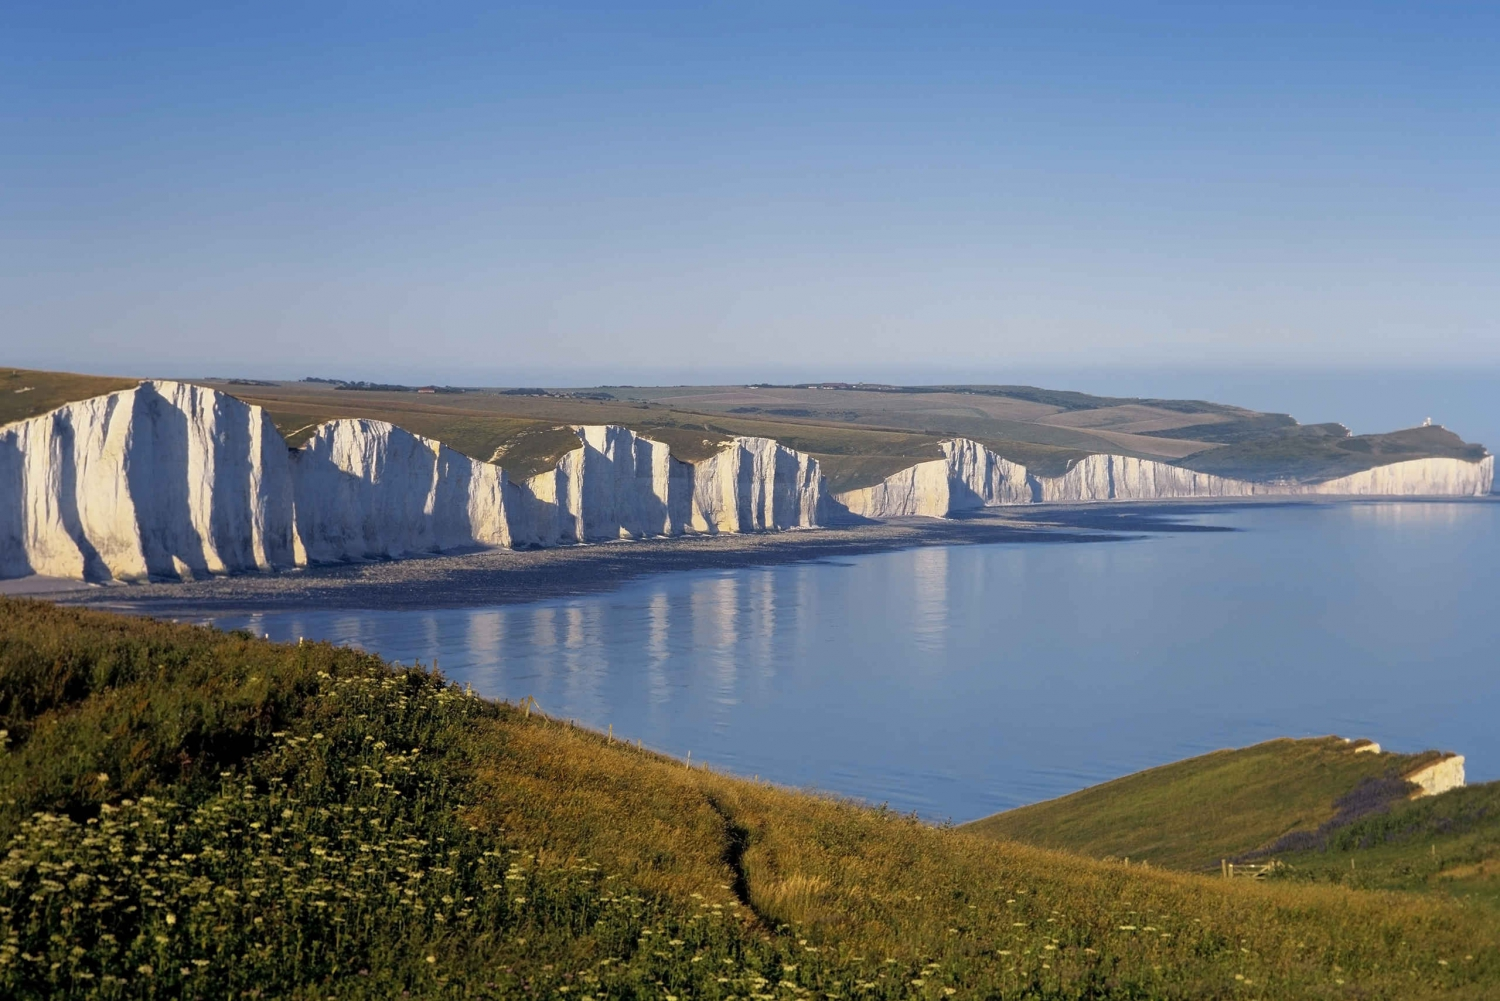 South Downs: People, Place and Produce Tour